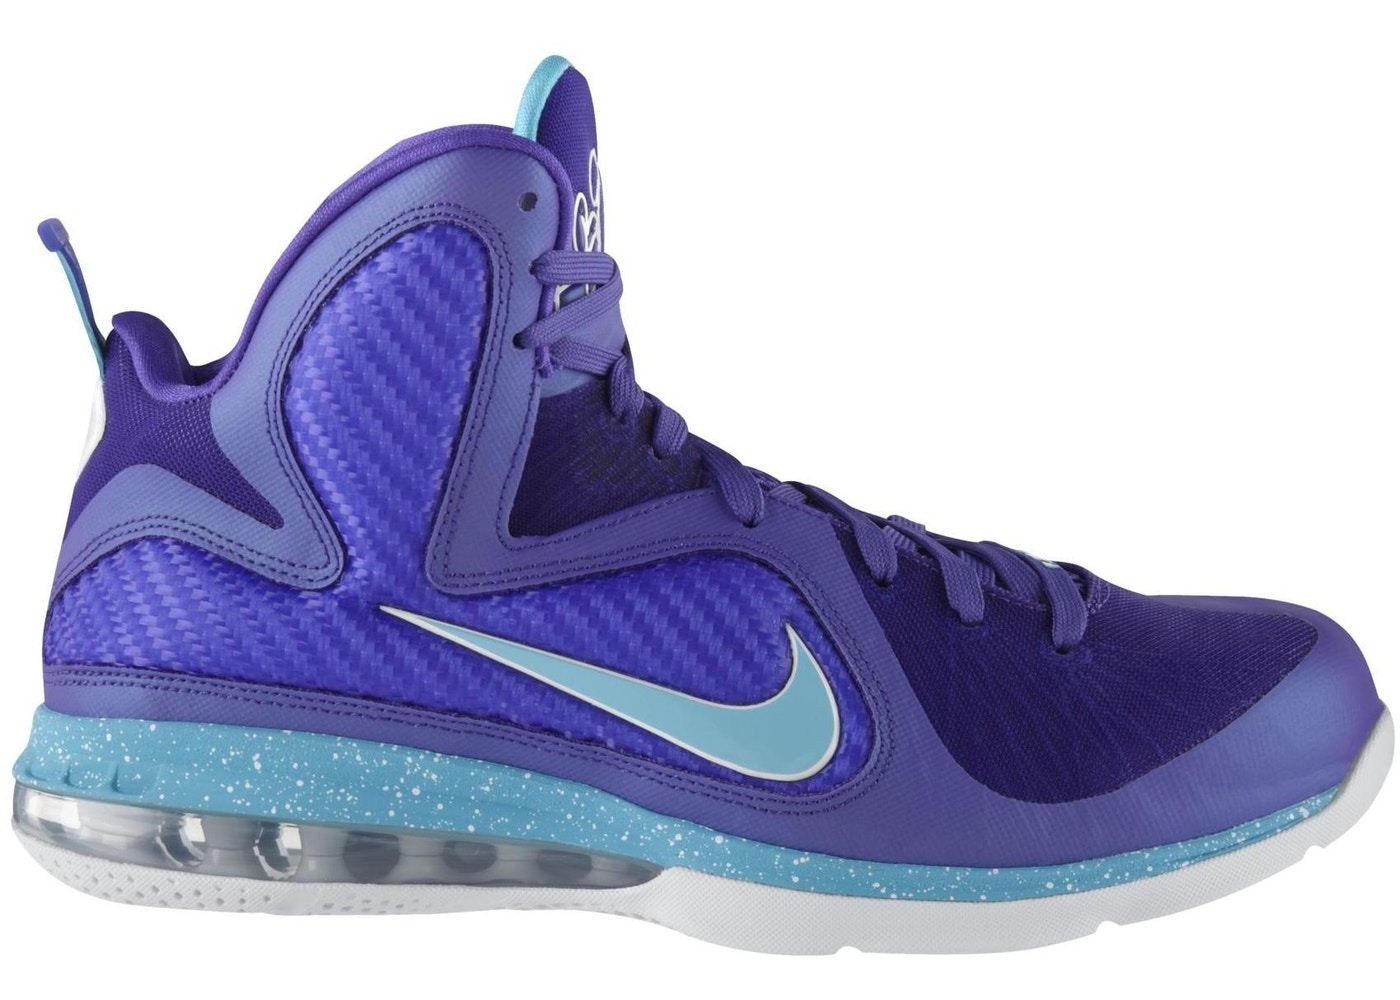 d57b90d3e253 LeBron 9 Summit Lake Hornets - 469764-500